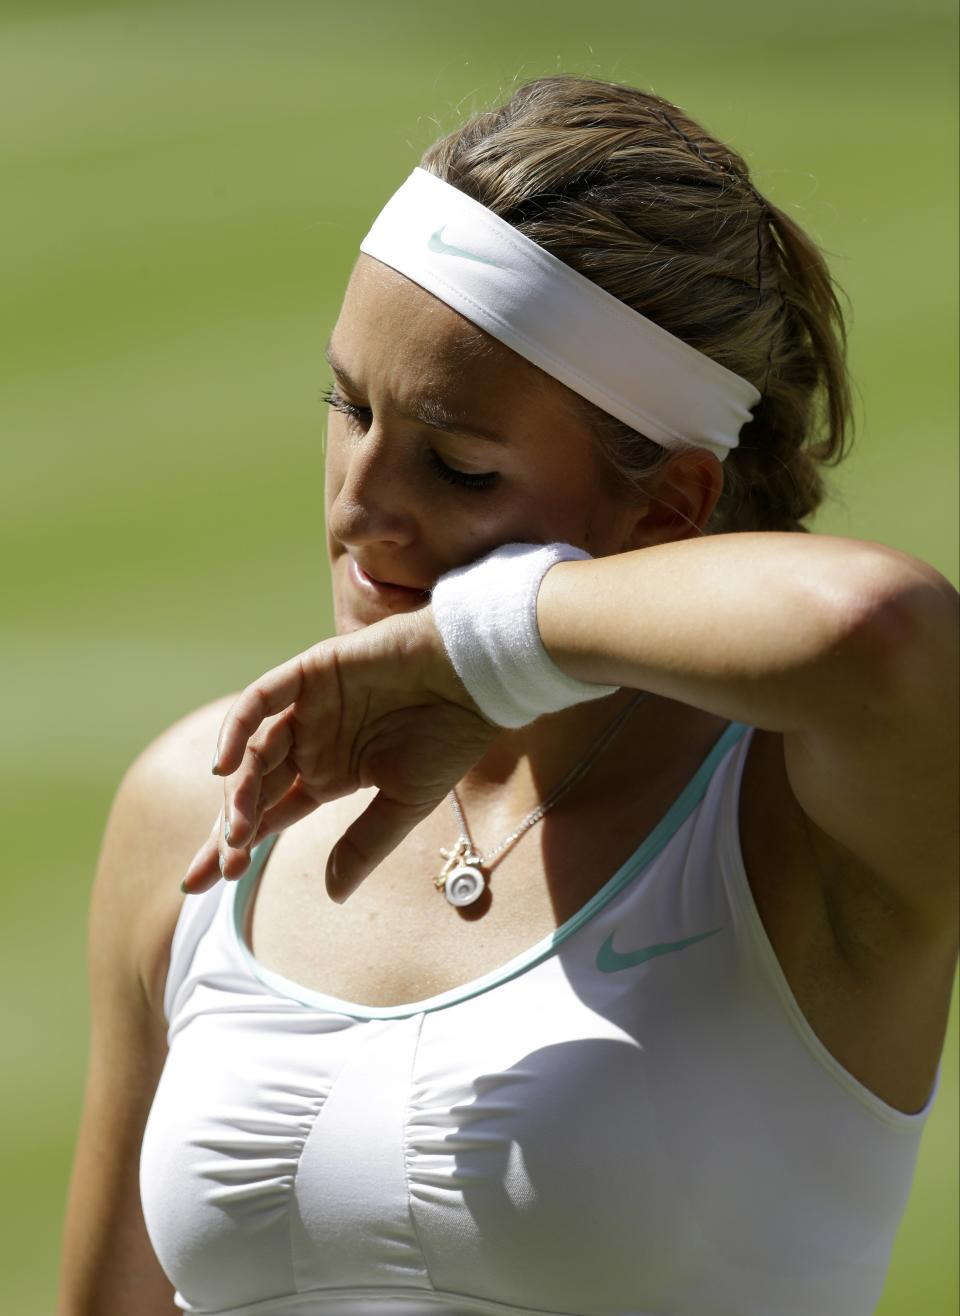 Victoria Azarenka of Belarus wipes her face during a semifinals match against Serena Williams of the United States at the All England Lawn Tennis Championships at Wimbledon, England, Thursday, July 5, 2012. (AP Photo/Alastair Grant)